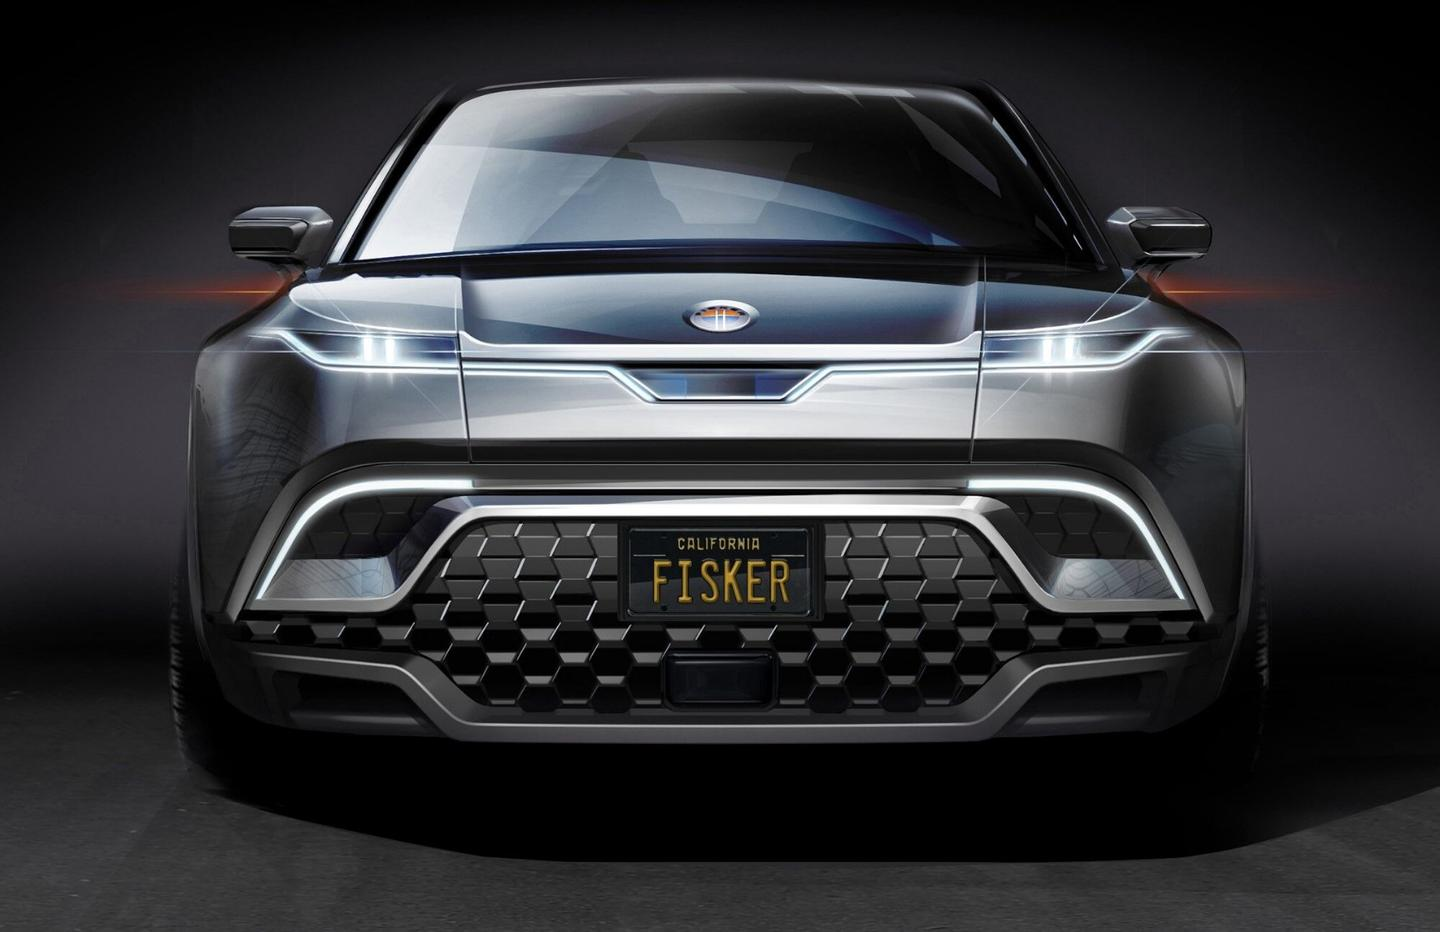 Technology is a major focus of the Fisker SUV announcement, with radar and other sensor elements being placed higher on the vehicle thanks to the elimination of theneed for a grille